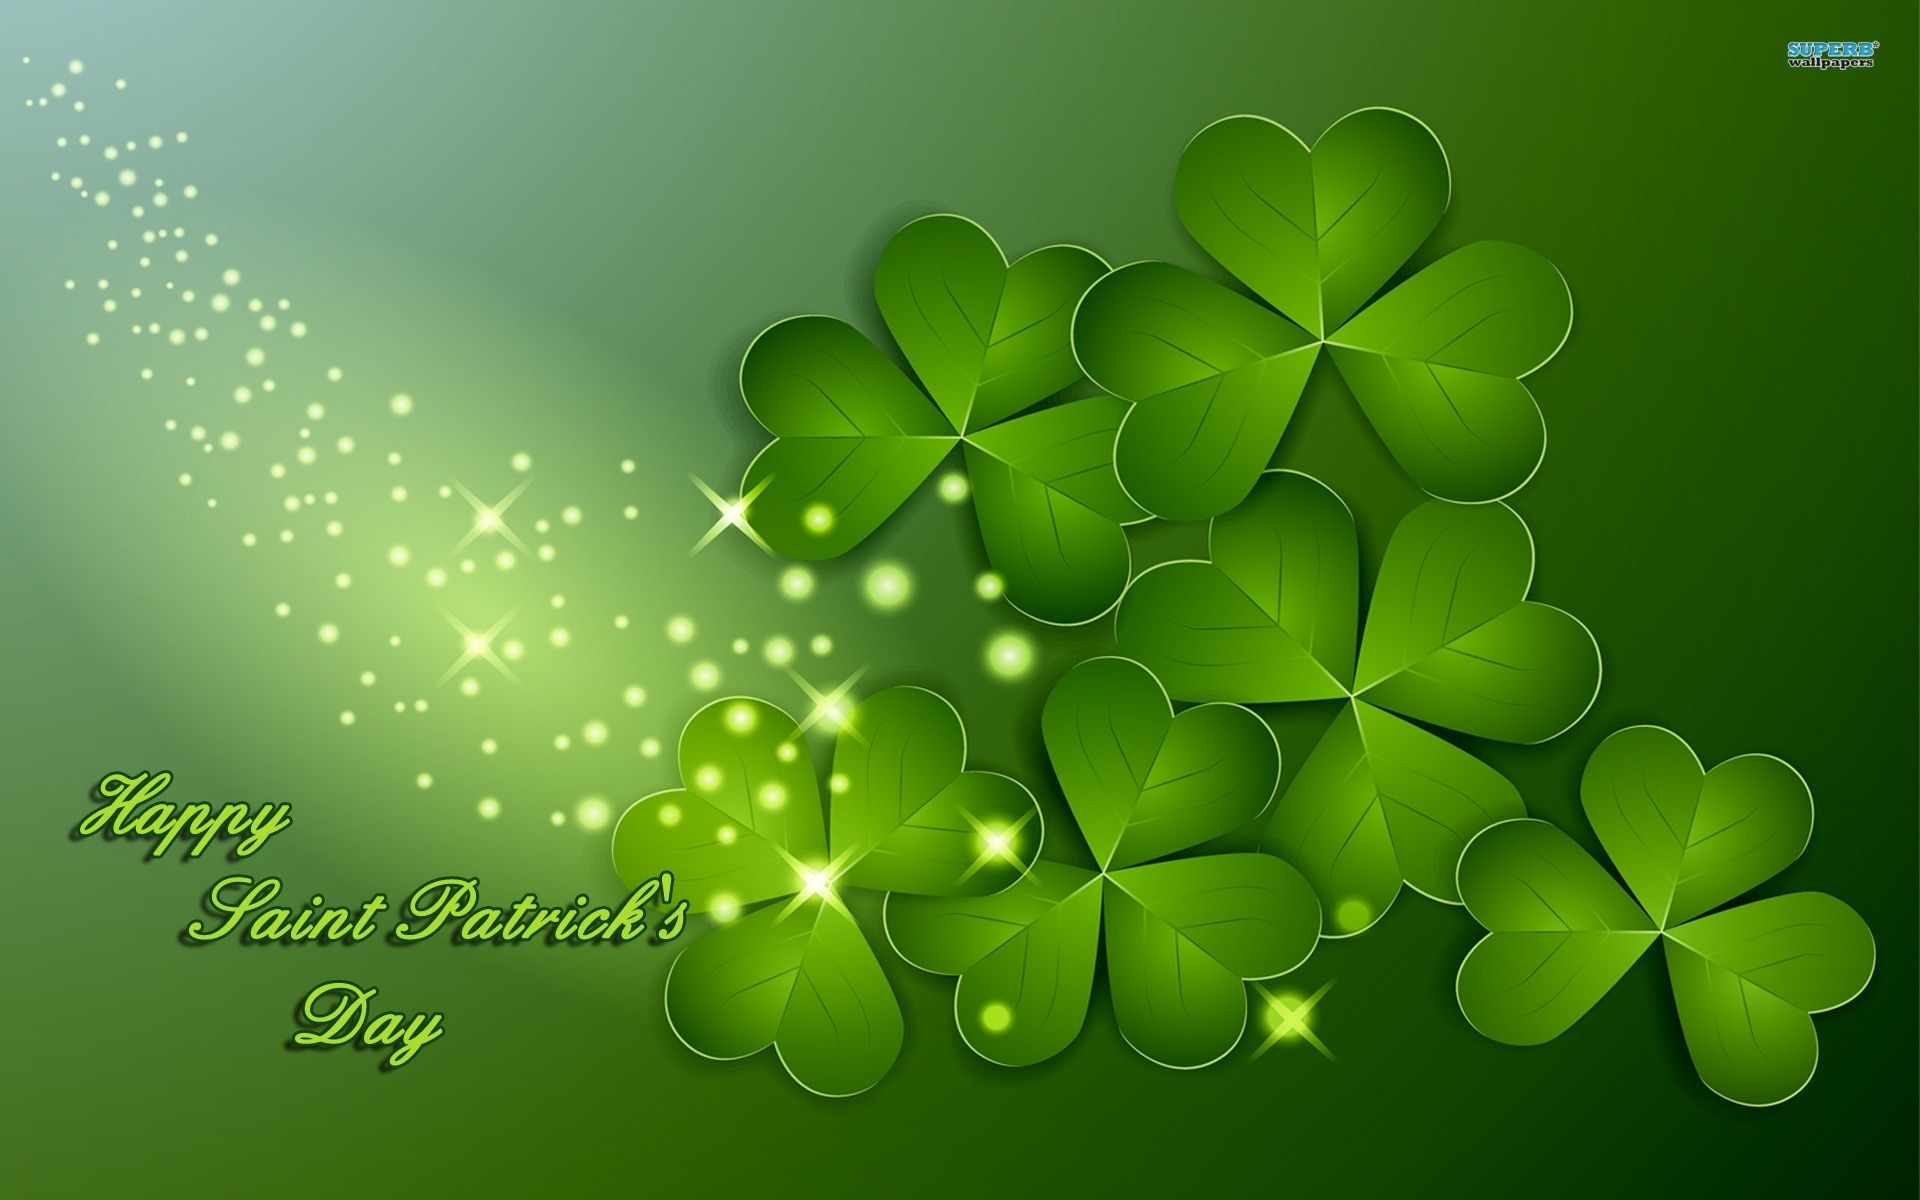 free st patricks day wallpaper for computer. saint patricks day